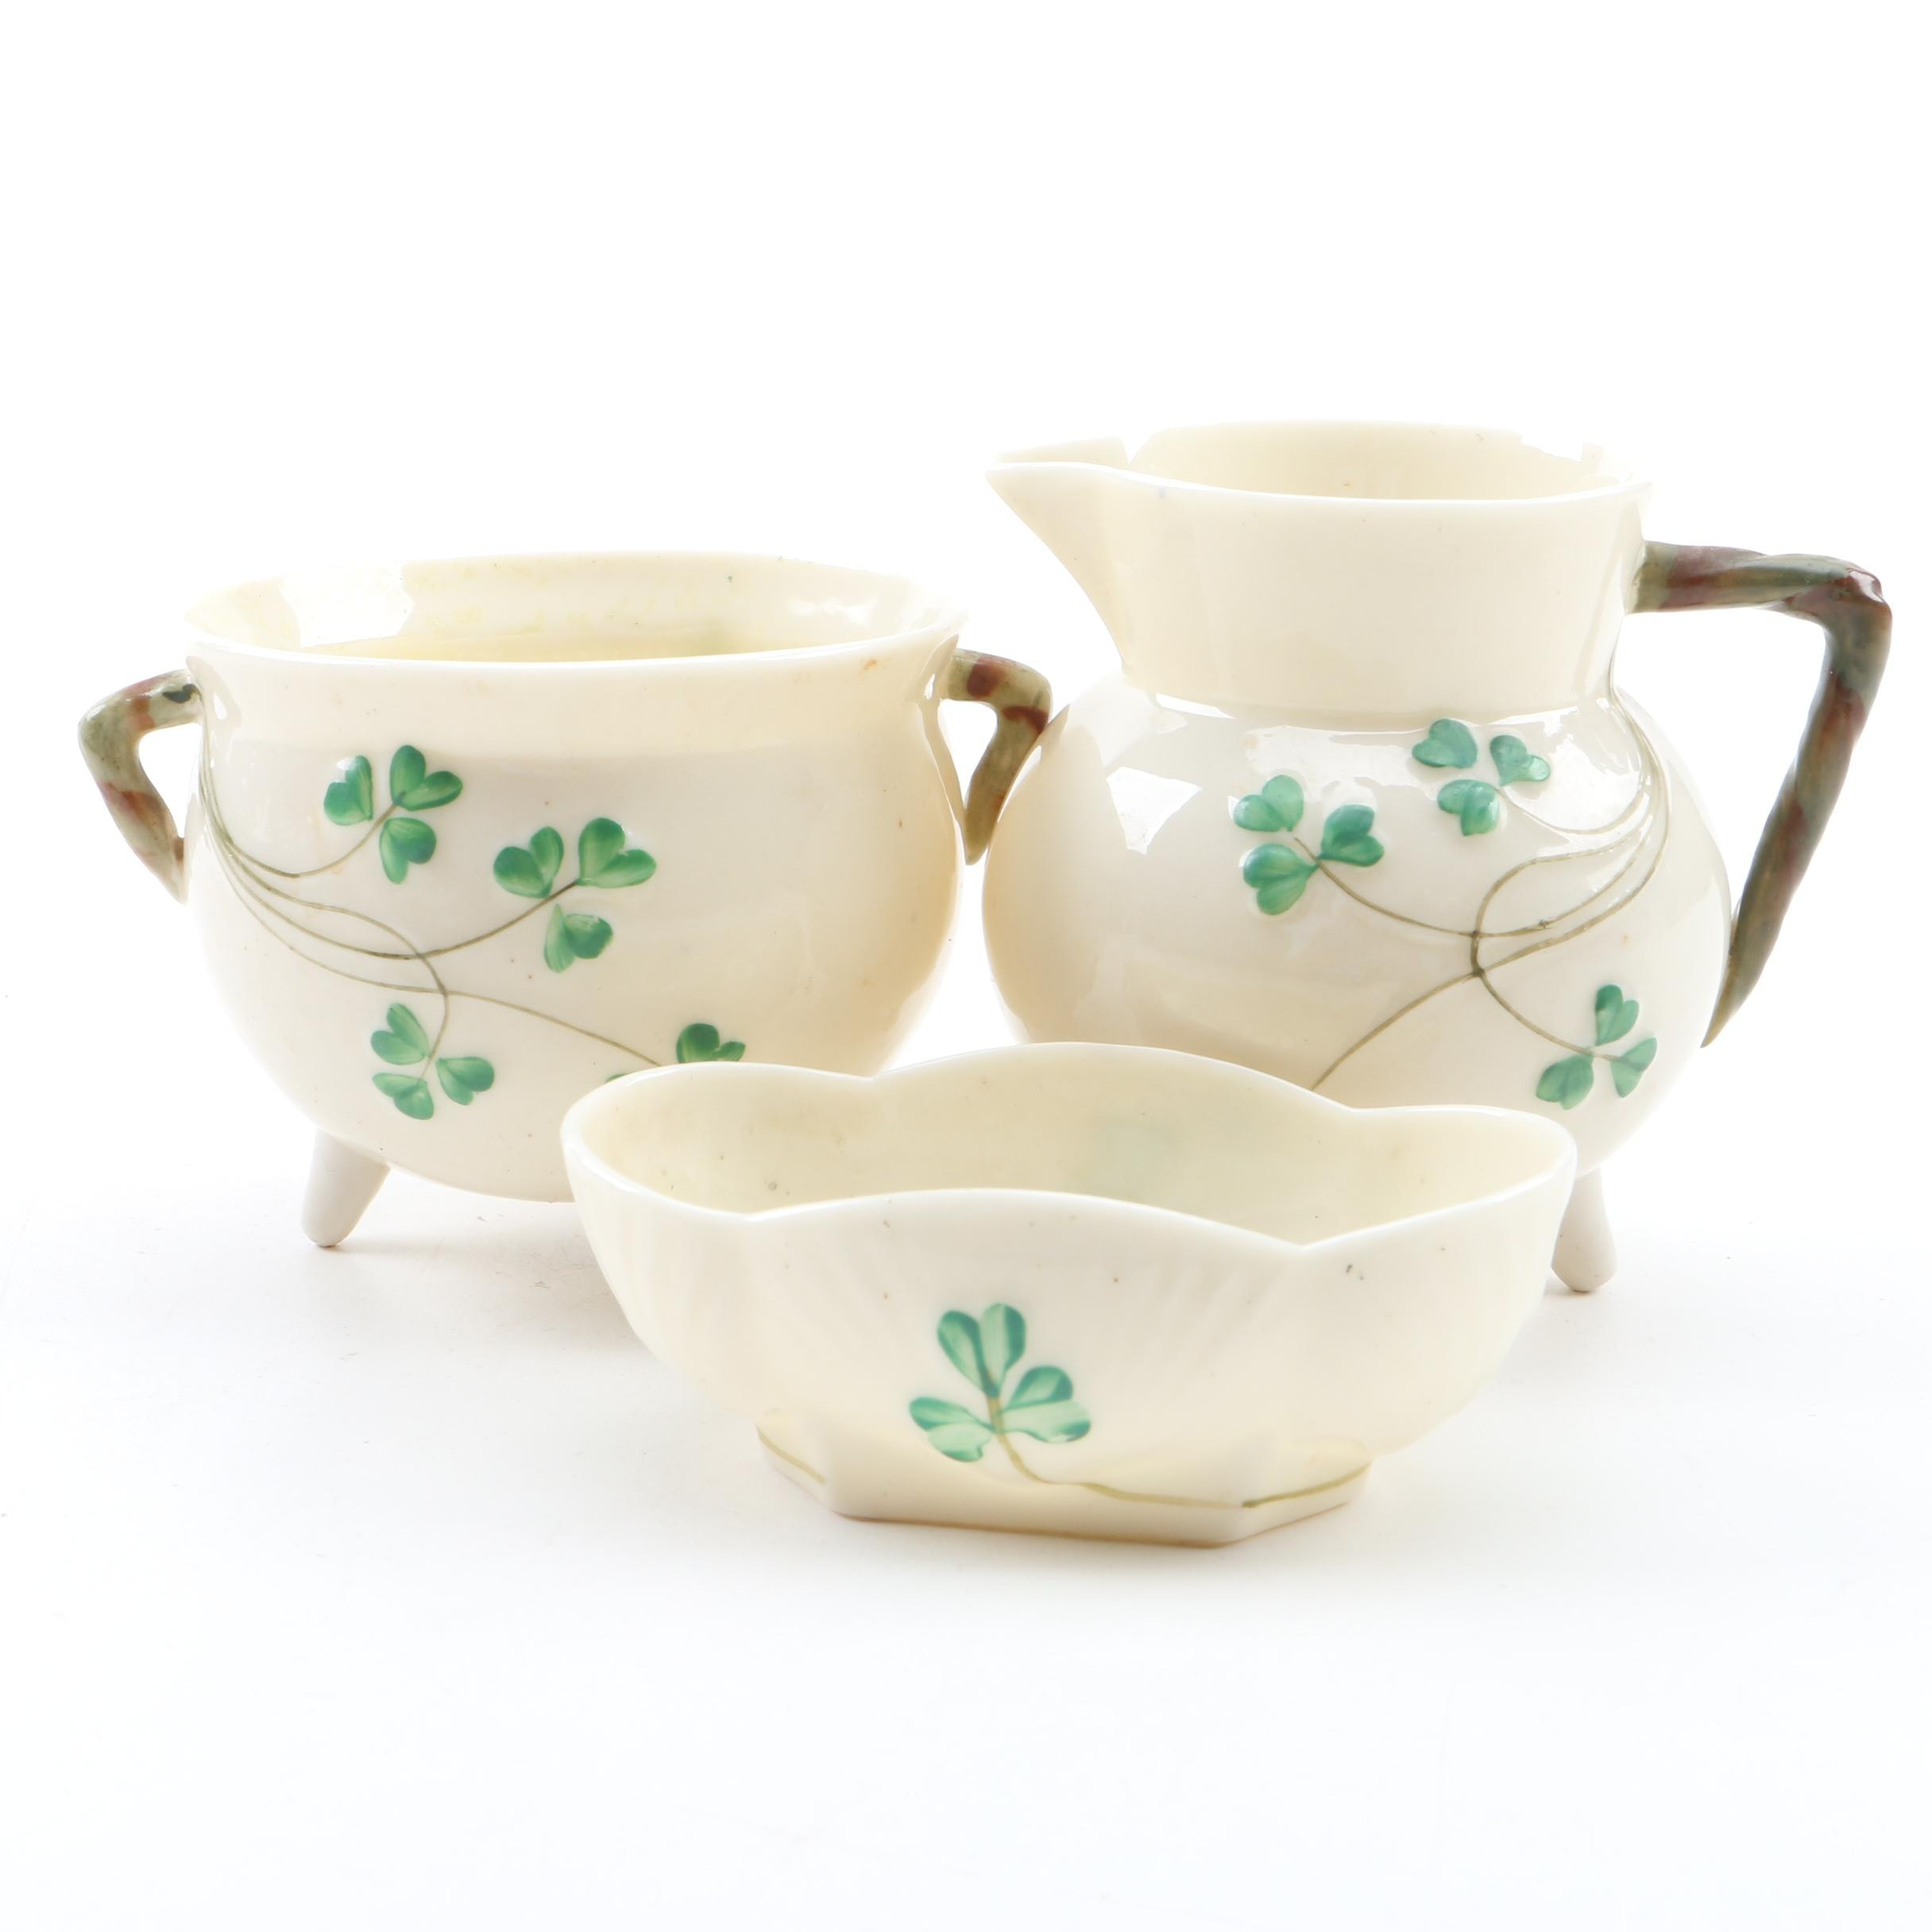 "Belleek ""Shamrock"" Footed Creamer Pitcher, Sugar Bowl and Oval Dish"